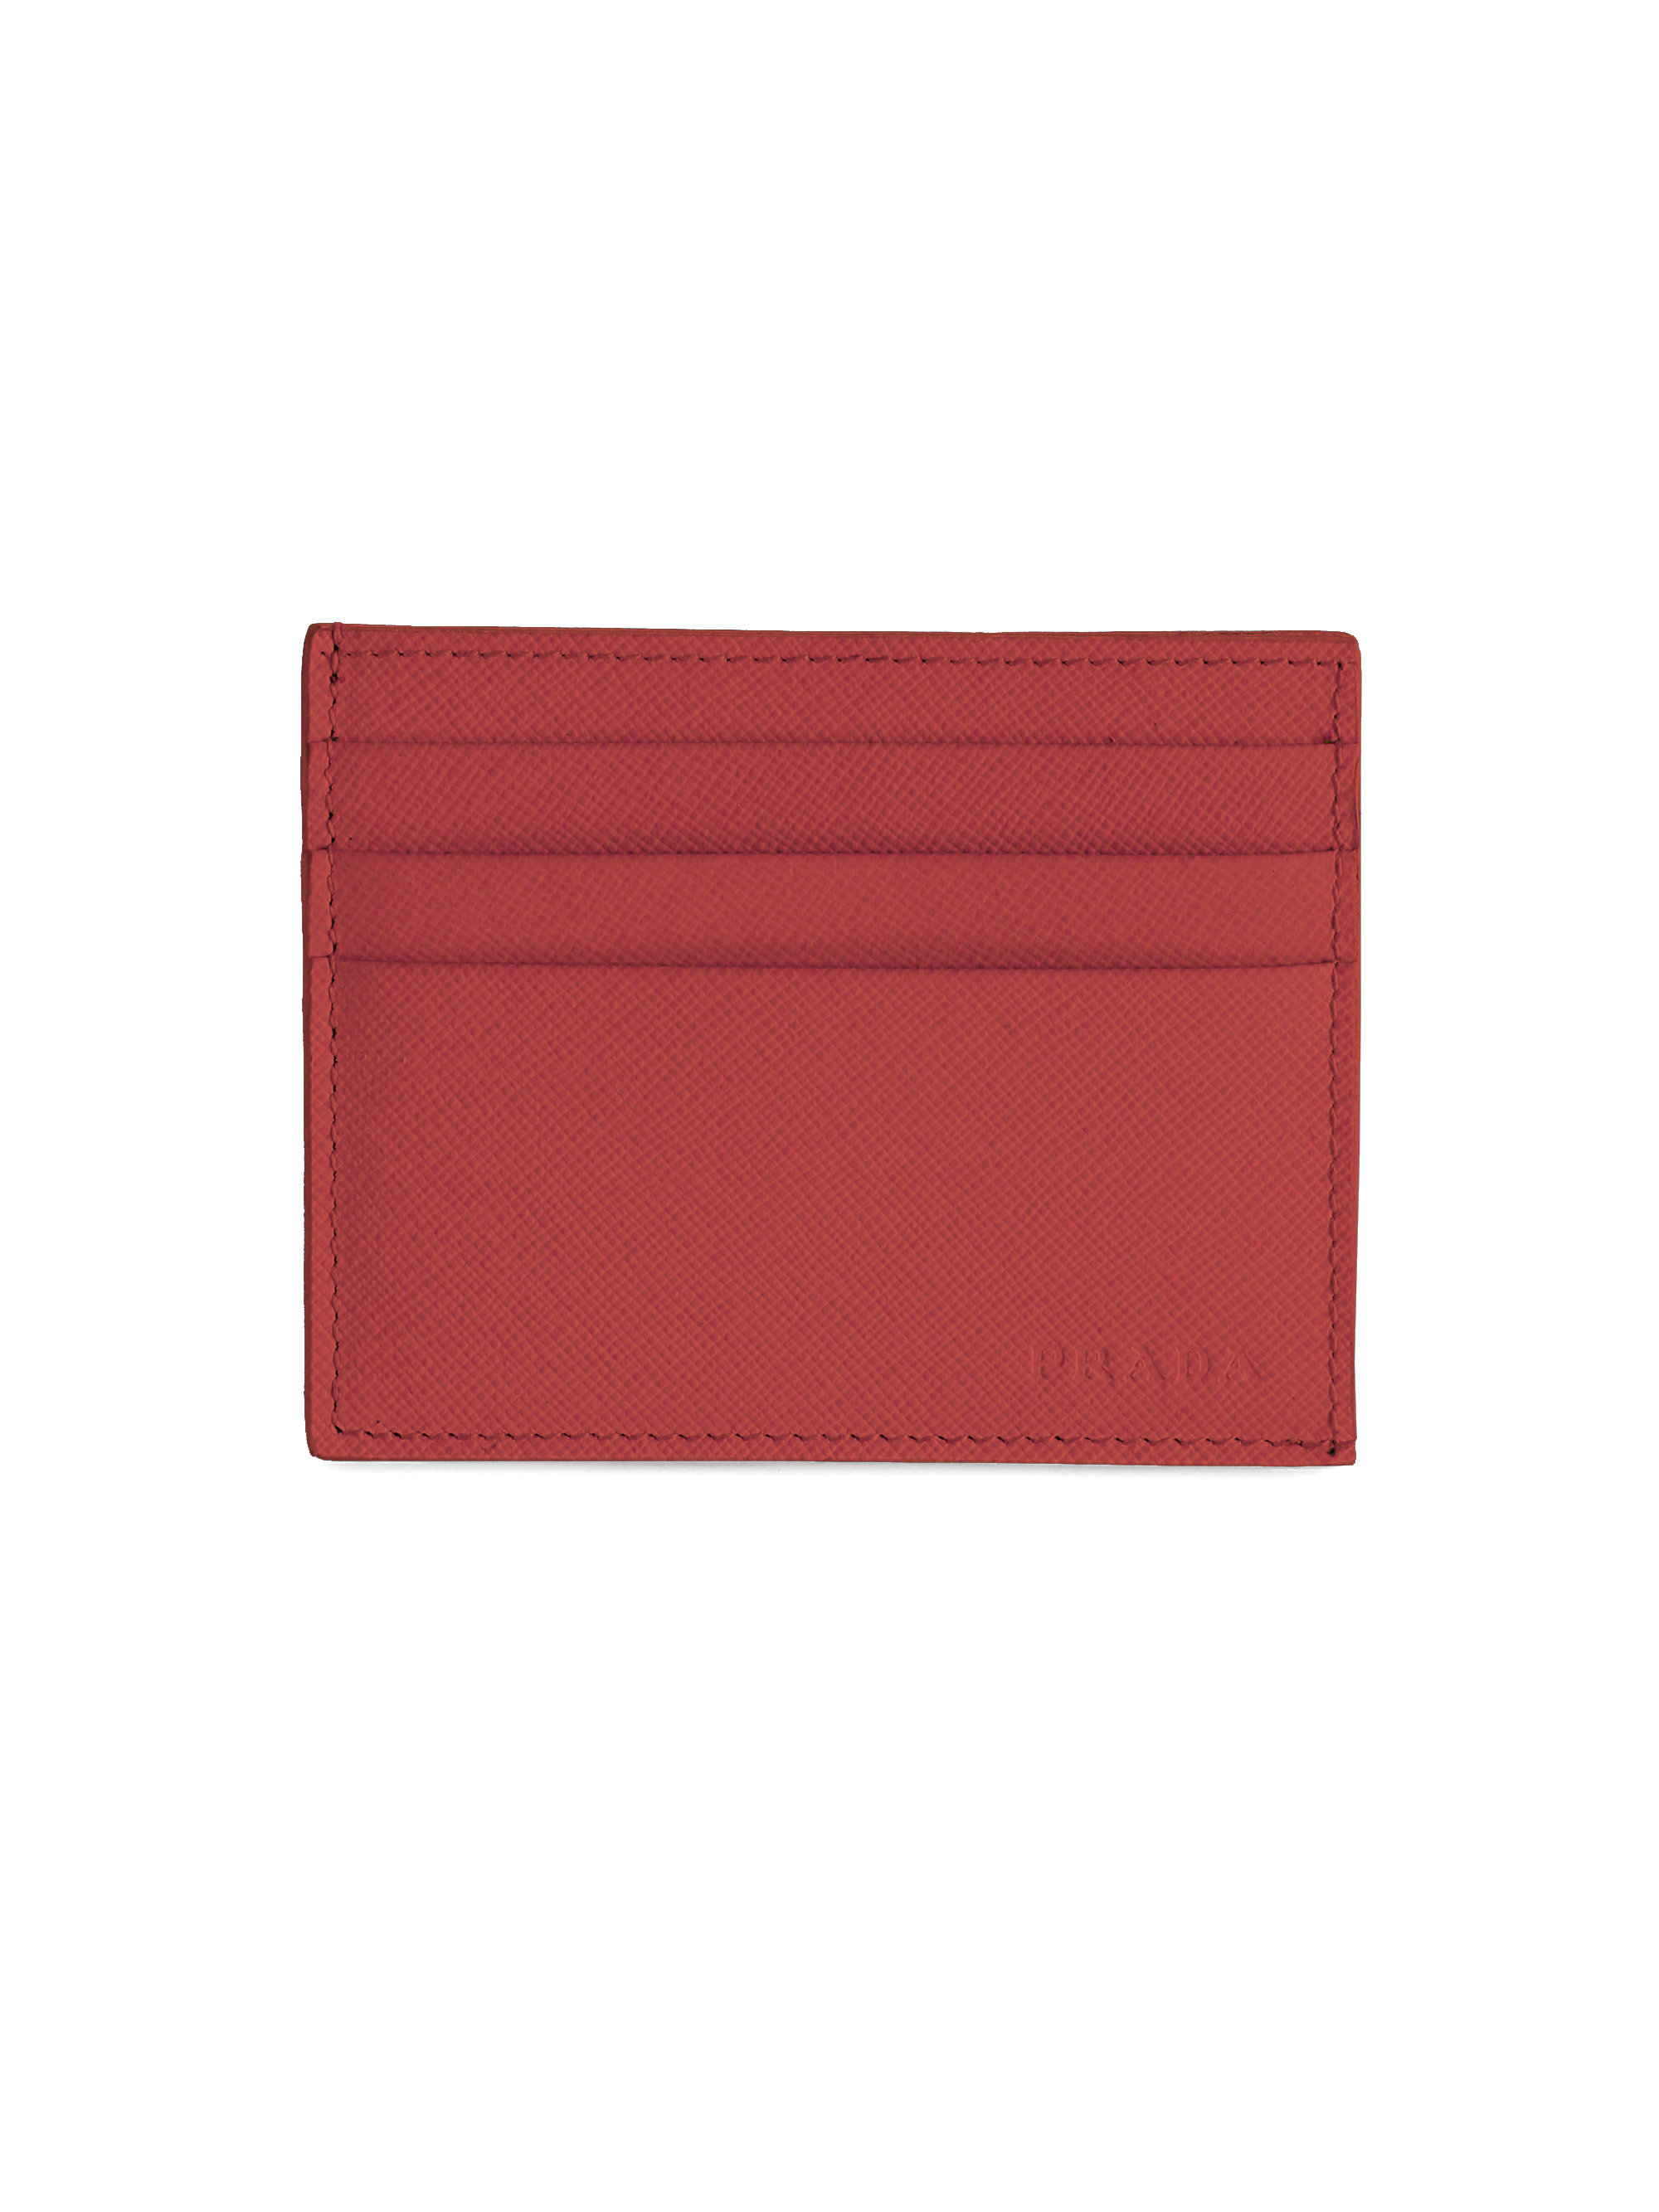 Card Case Prada